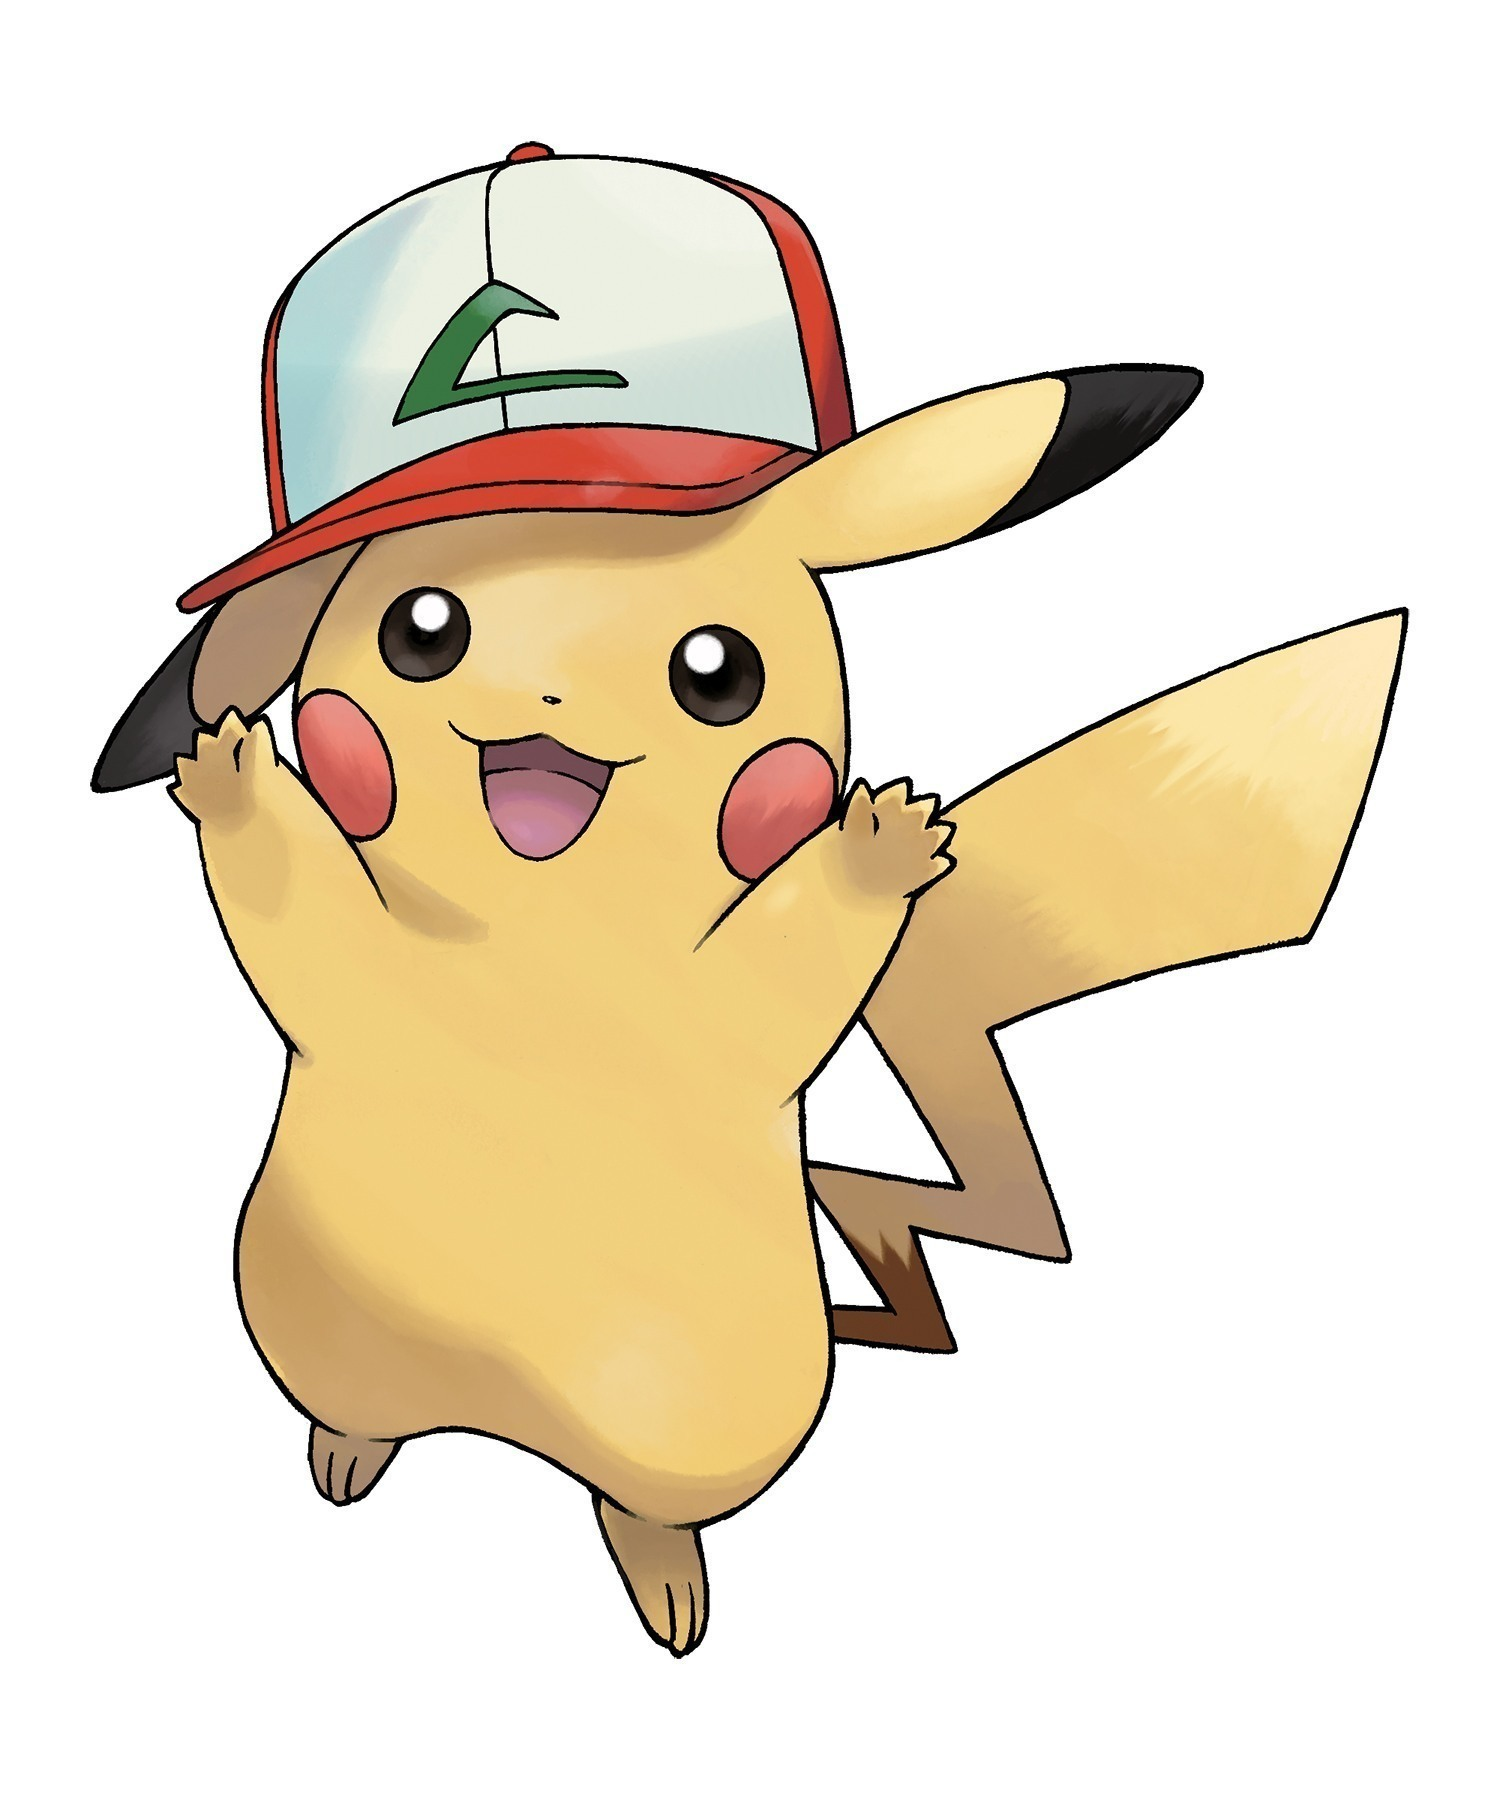 special pokemon sun moon distributions announced for pikachu